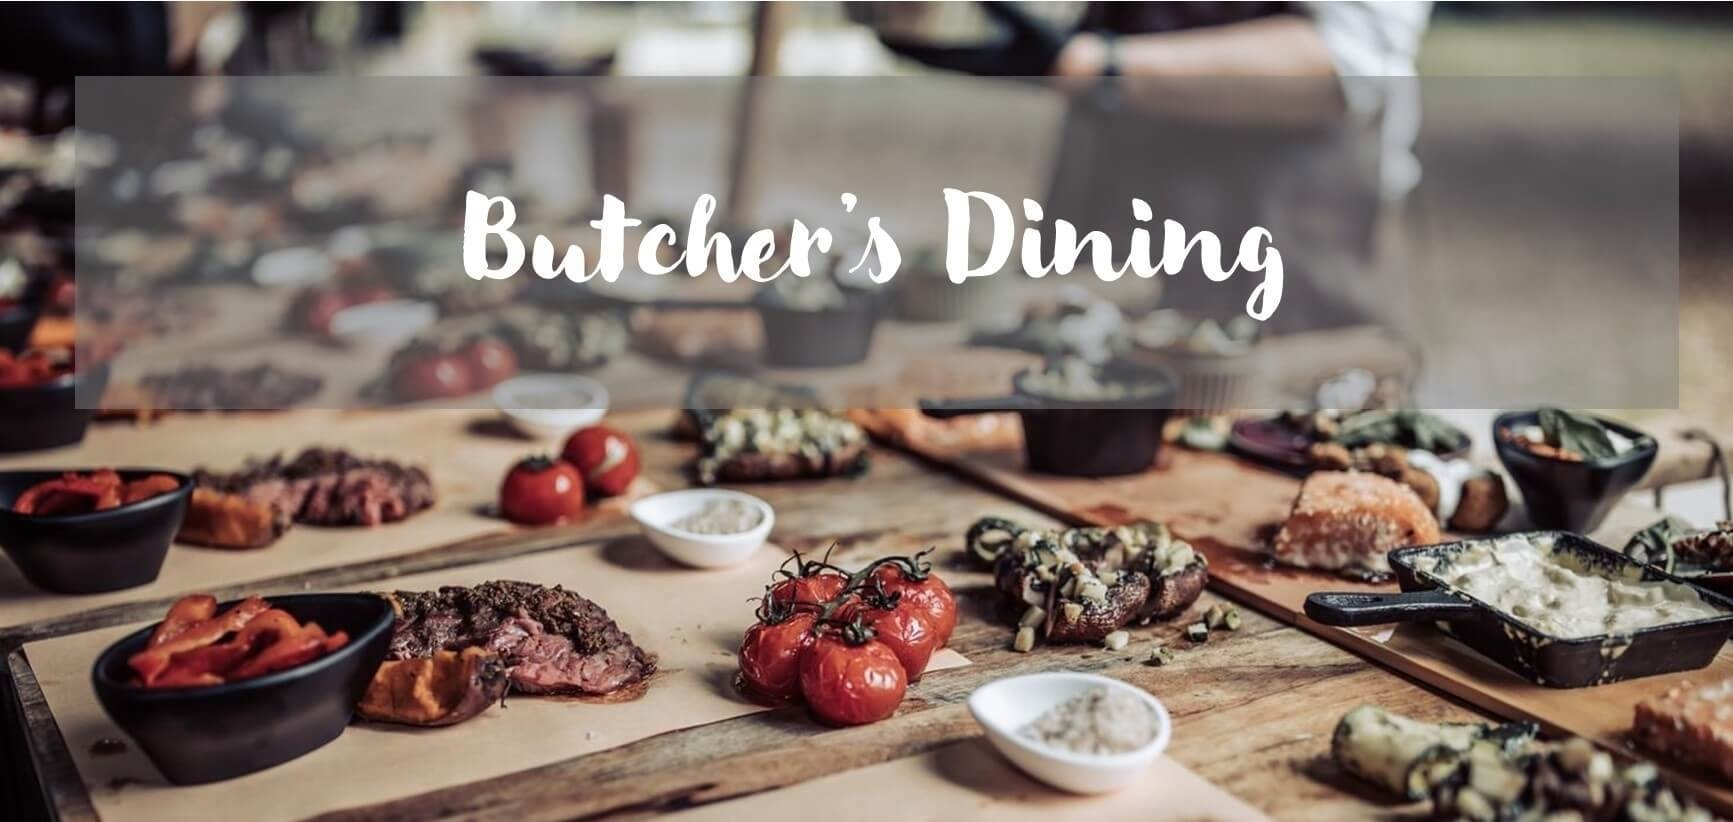 Butcher's Dining